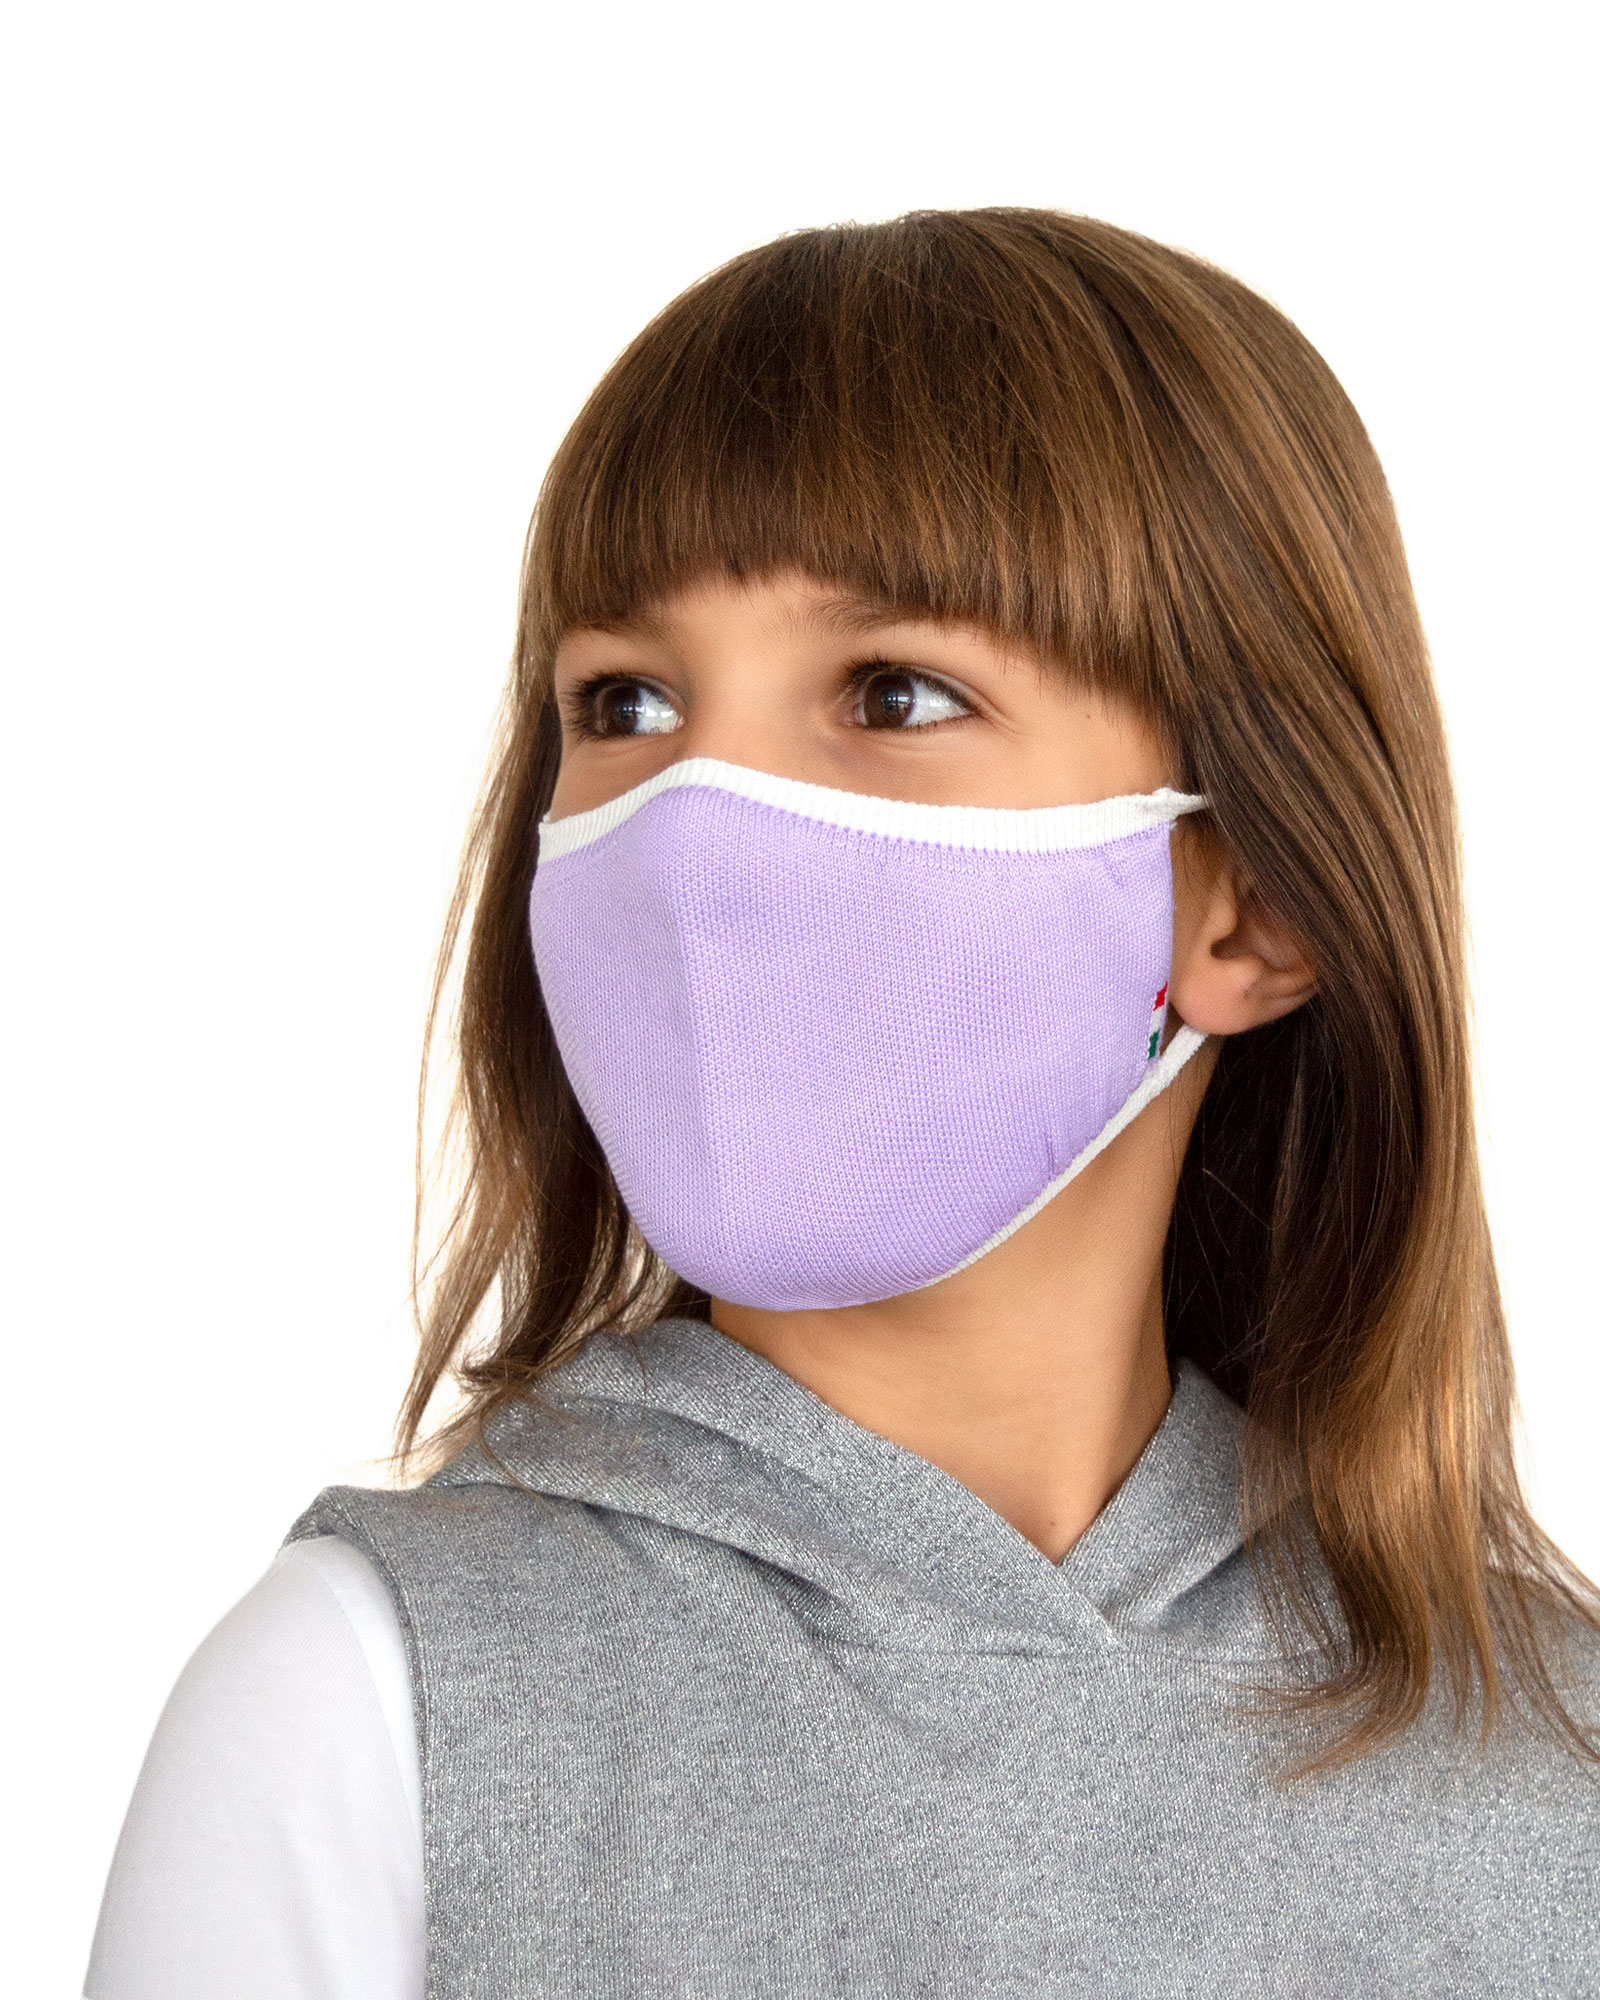 KIDS-MASK-01S-relaxsan-unima-kids-mask_384-VIOLET_girl